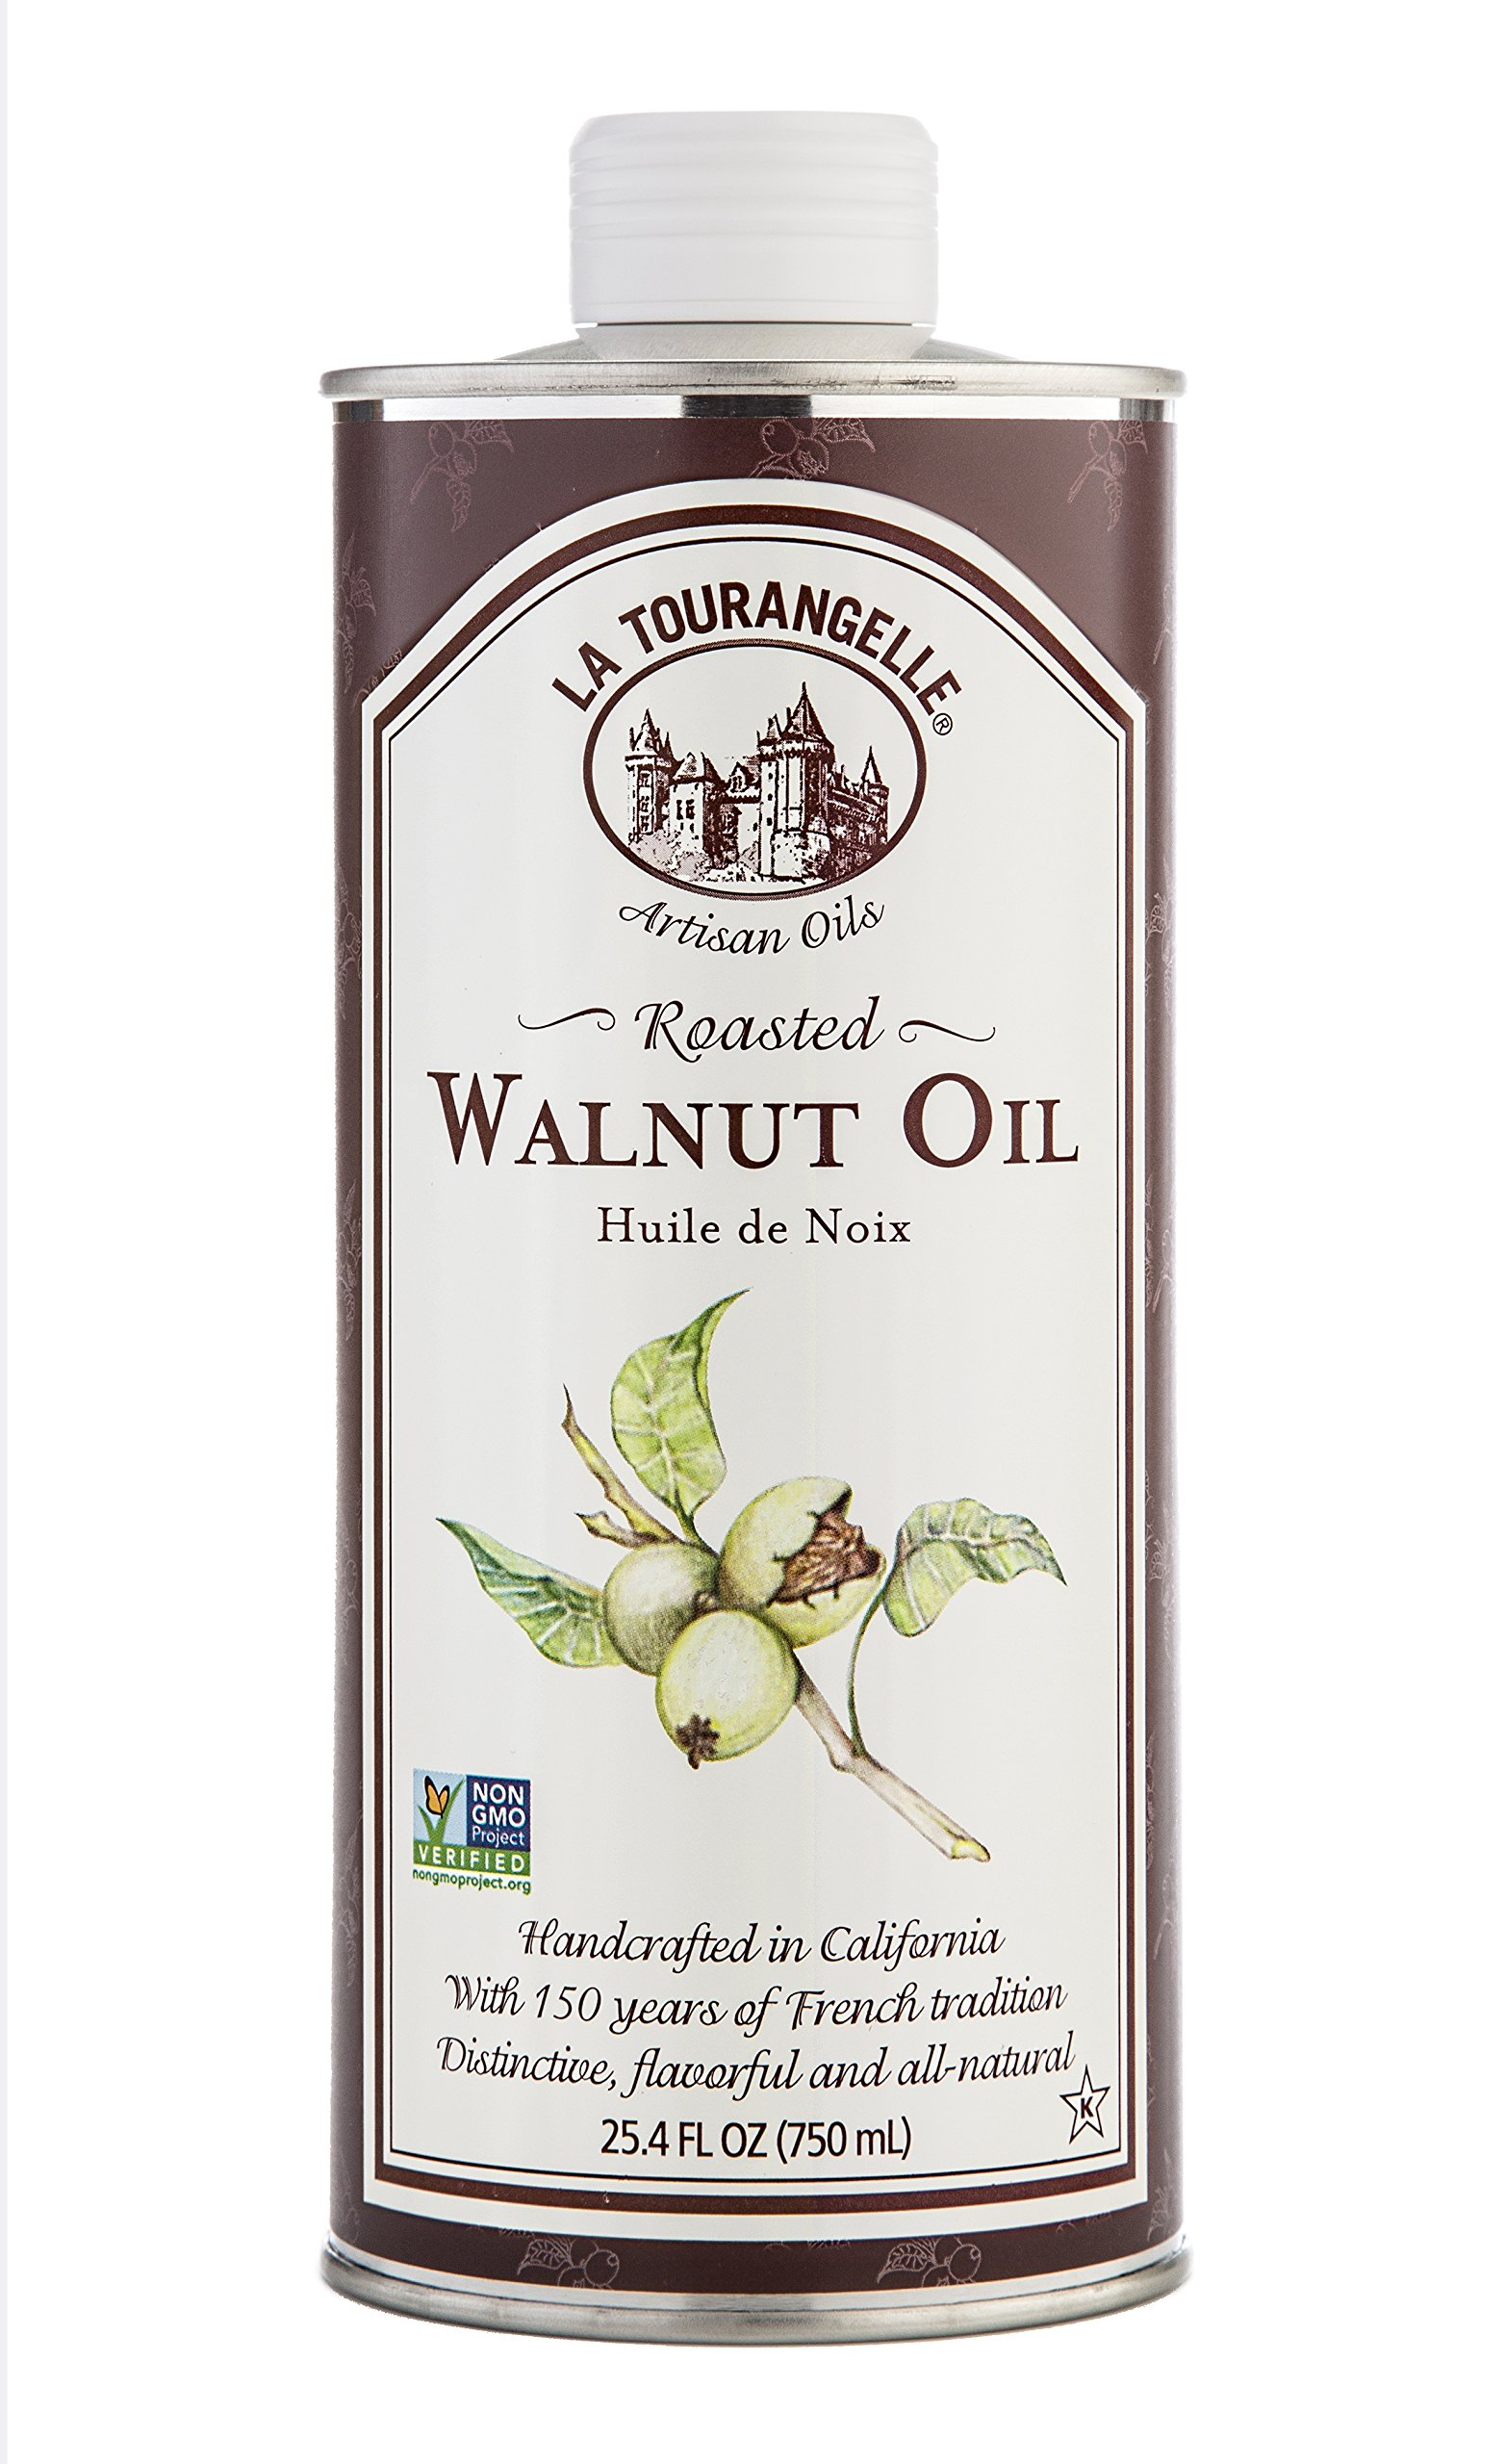 La Tourangelle Roasted Walnut Oil 25.4 Fl. Oz., All-Natural, Artisanal, Great for Salads, Grilled Fish and Meat, or Pasta